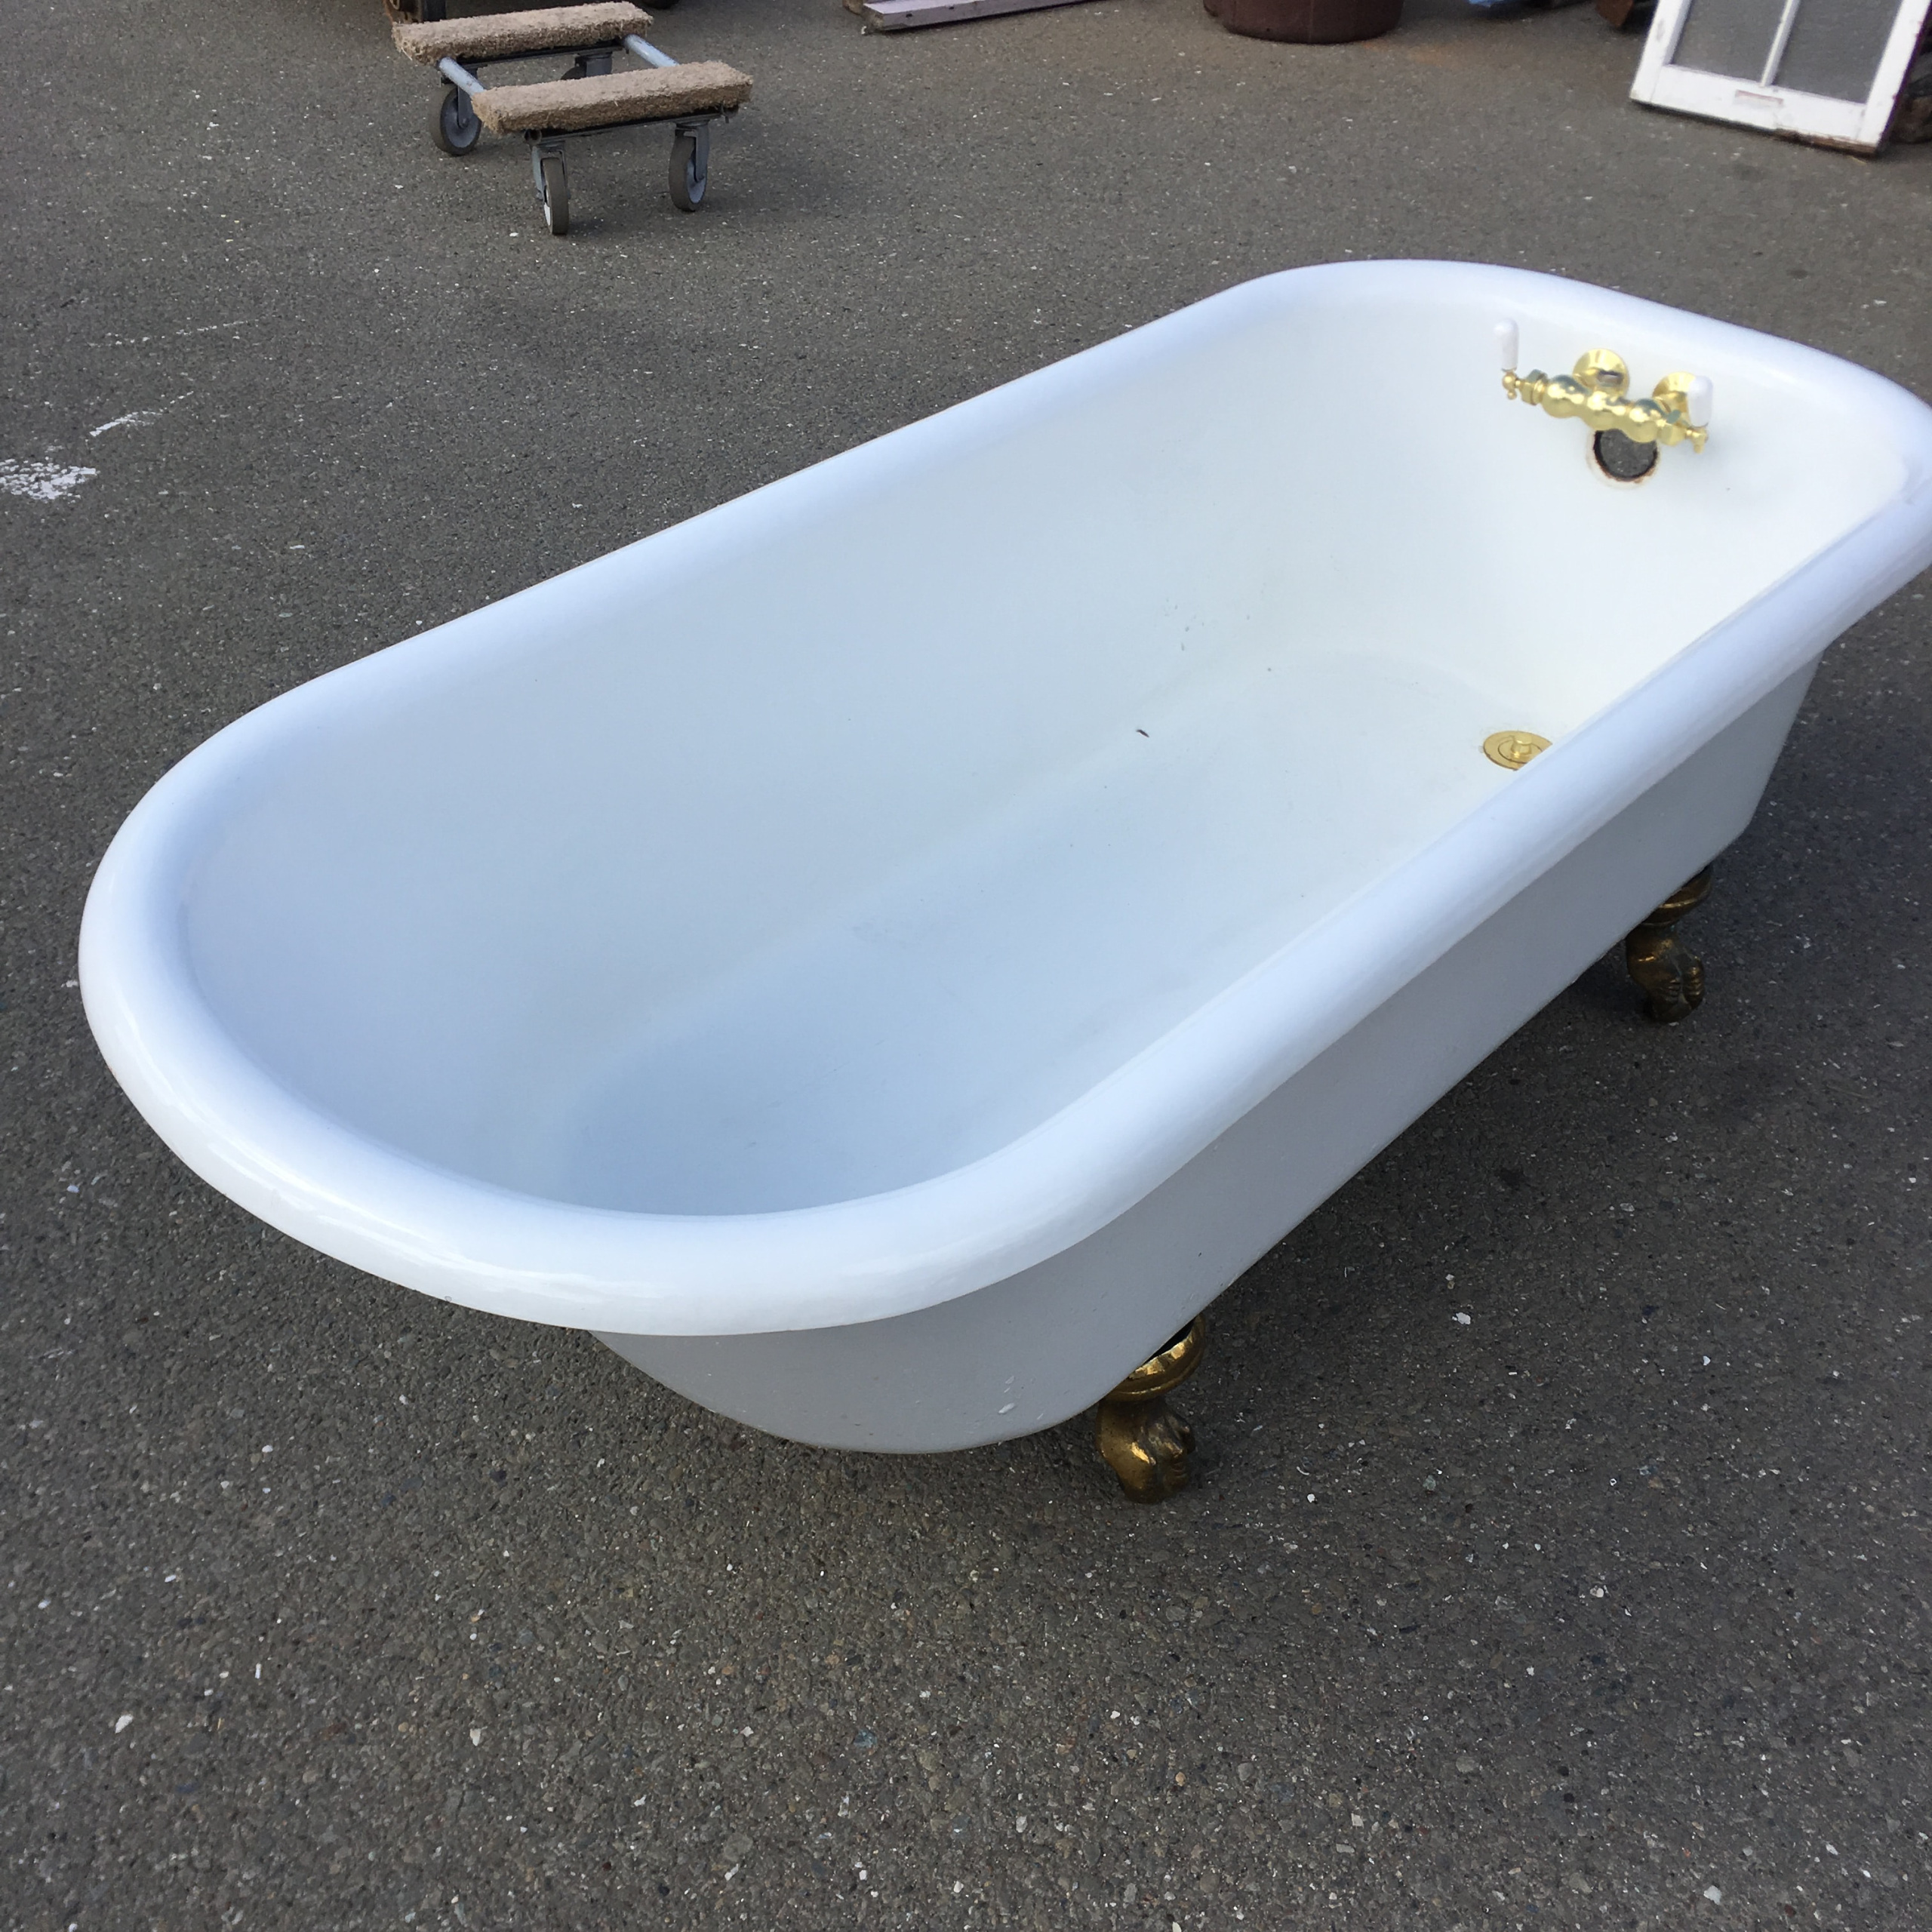 5 1/2 Ft Claw Foot Tub w/ Shower Ring & Hardware